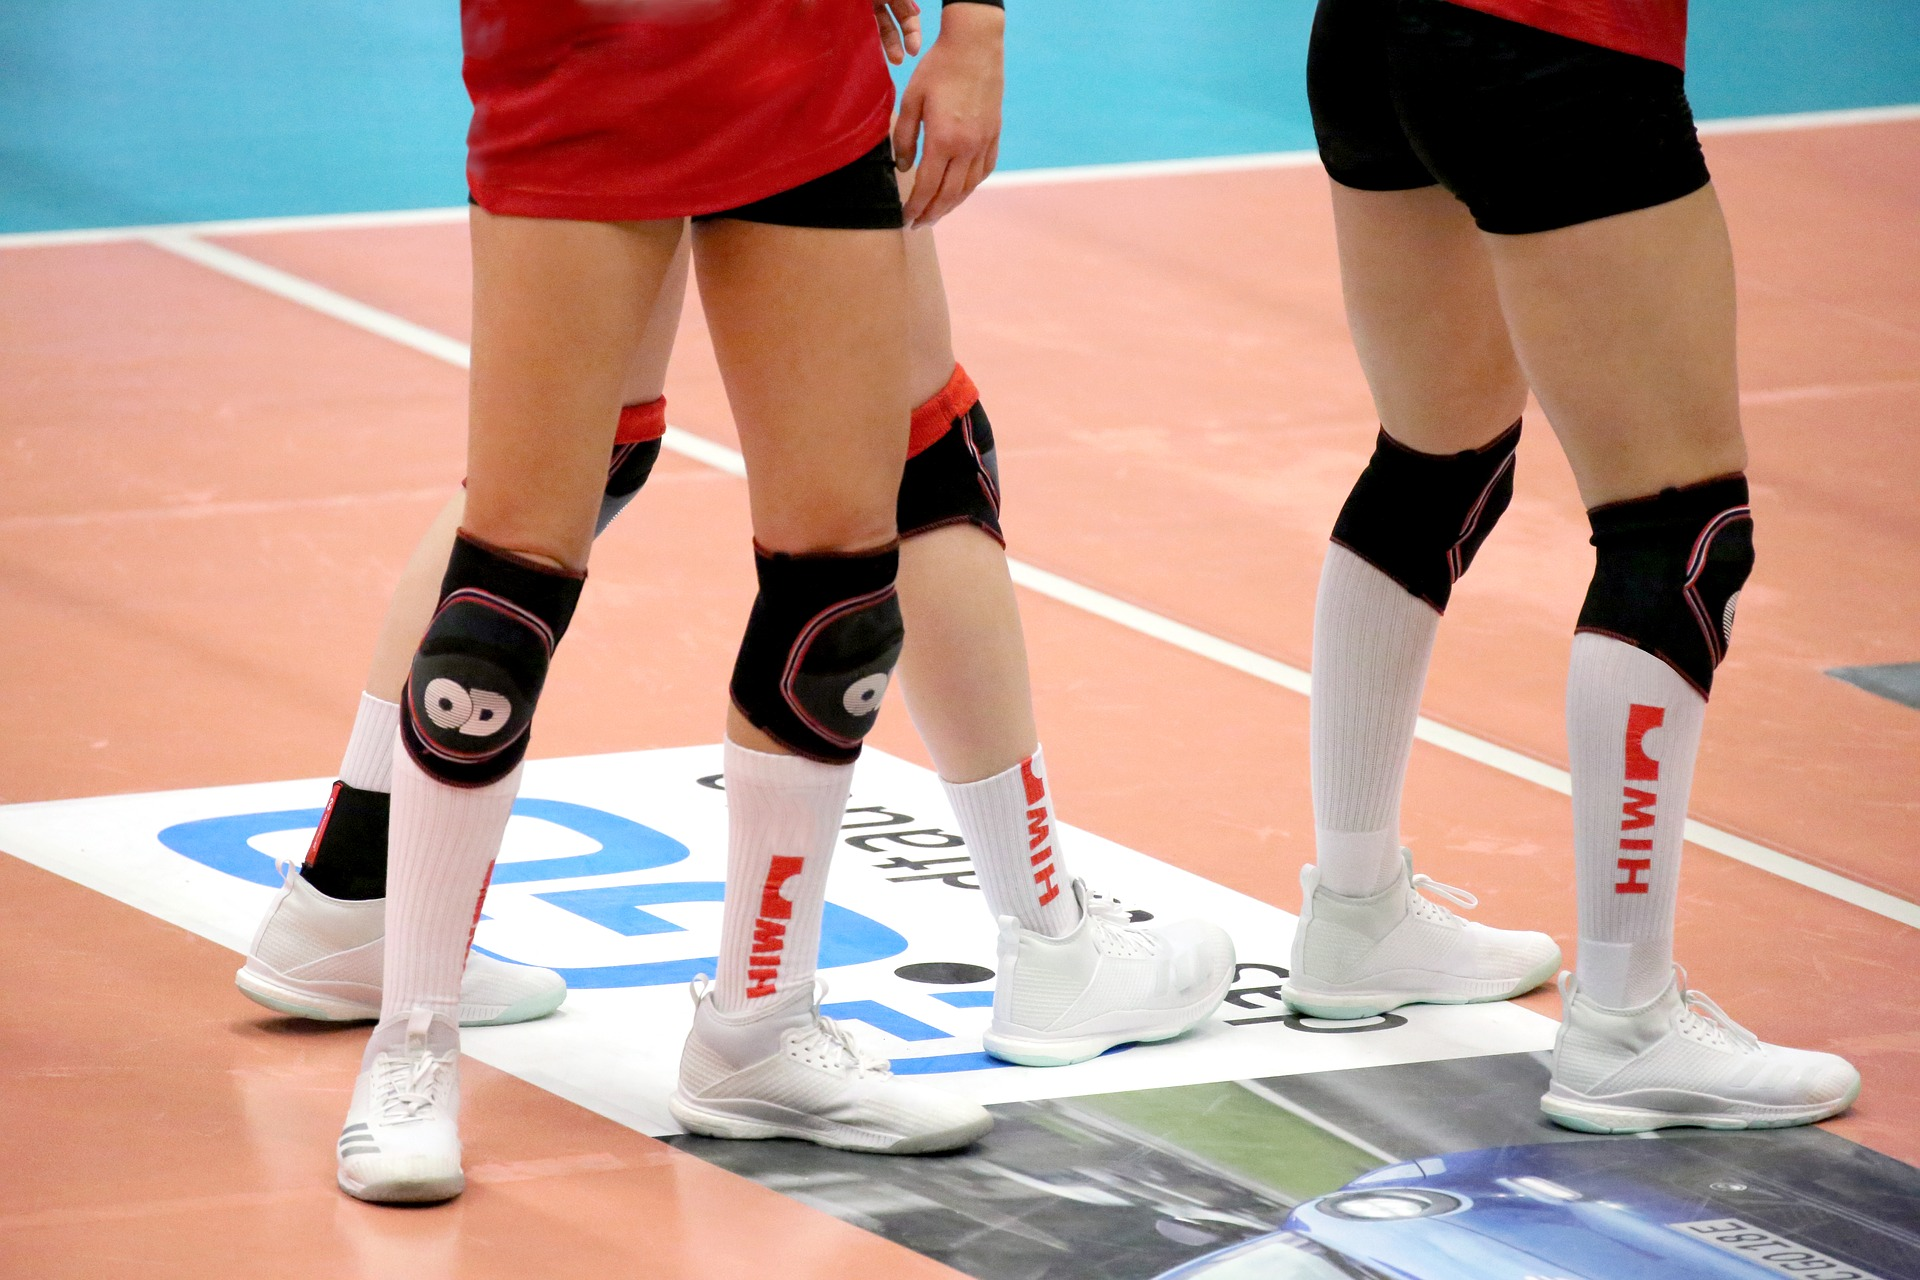 10 Best Volleyball Knee Pads In 2019 Buyer S Guide Athletic Habits